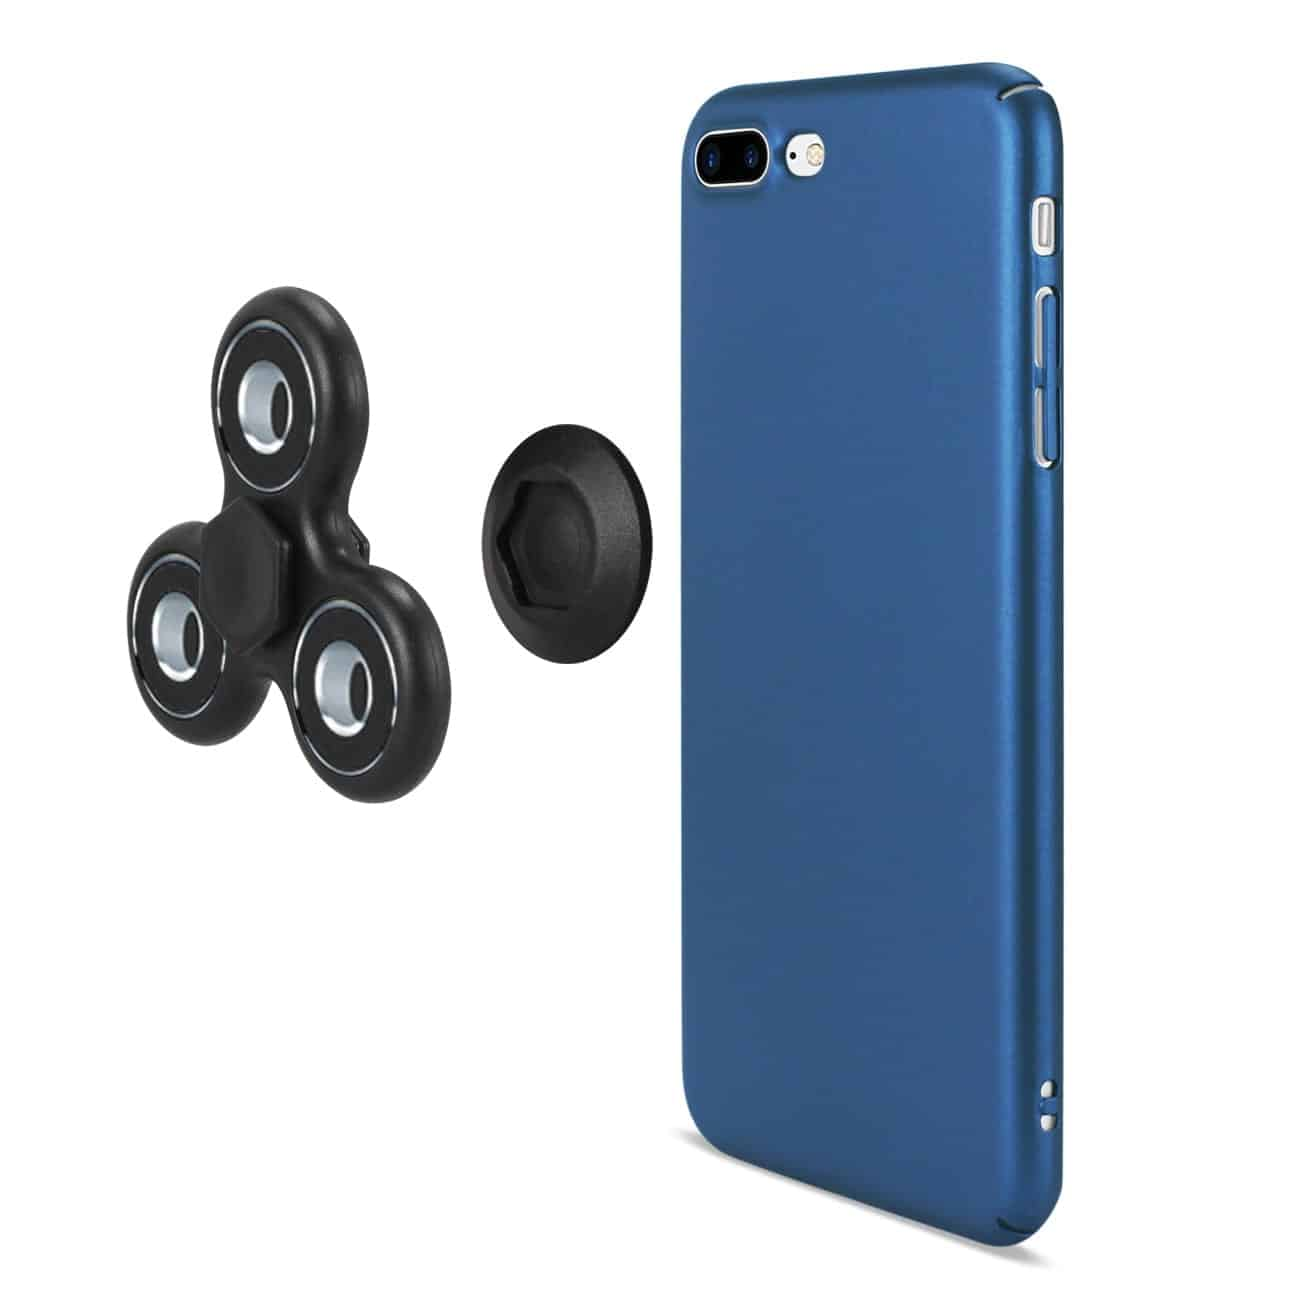 IPHONE 7 PLUS/ 6 PLUS/ 6S PLUS CASE WITH LED FIDGET SPINNER CLIP ON IN NAVY